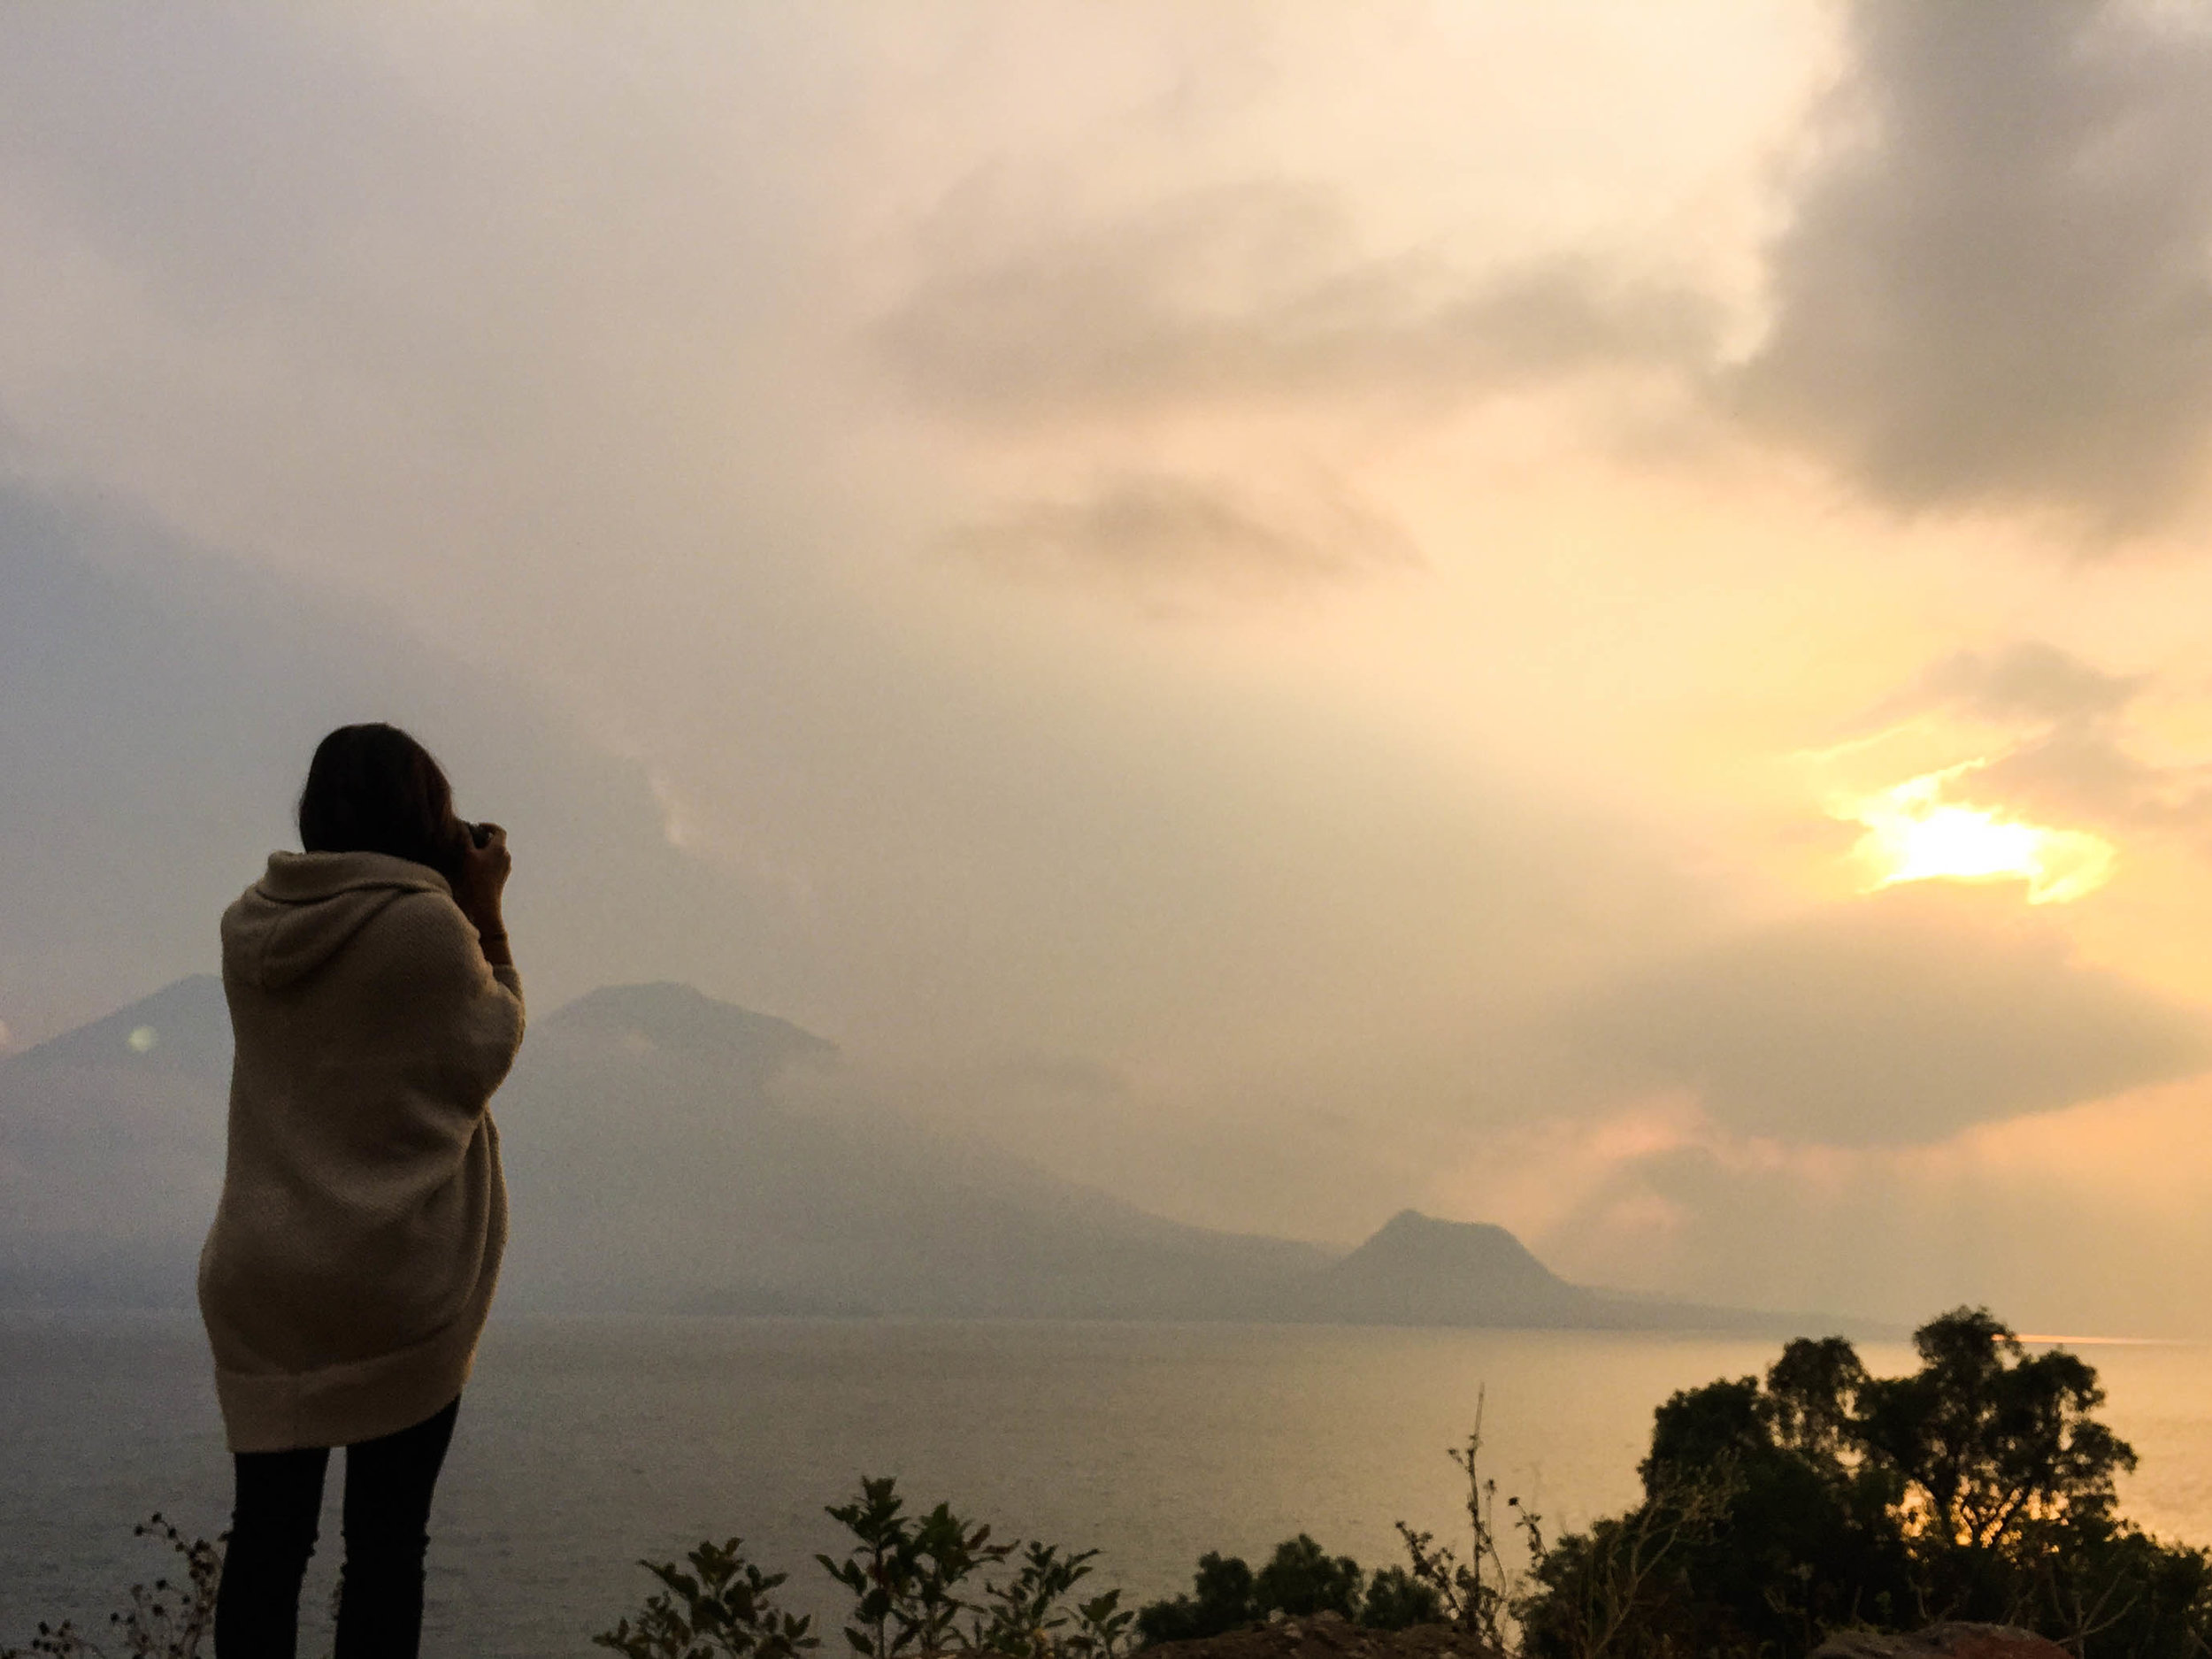 Getting to explore the land which my artisan partners in Lake Atitlan come from.